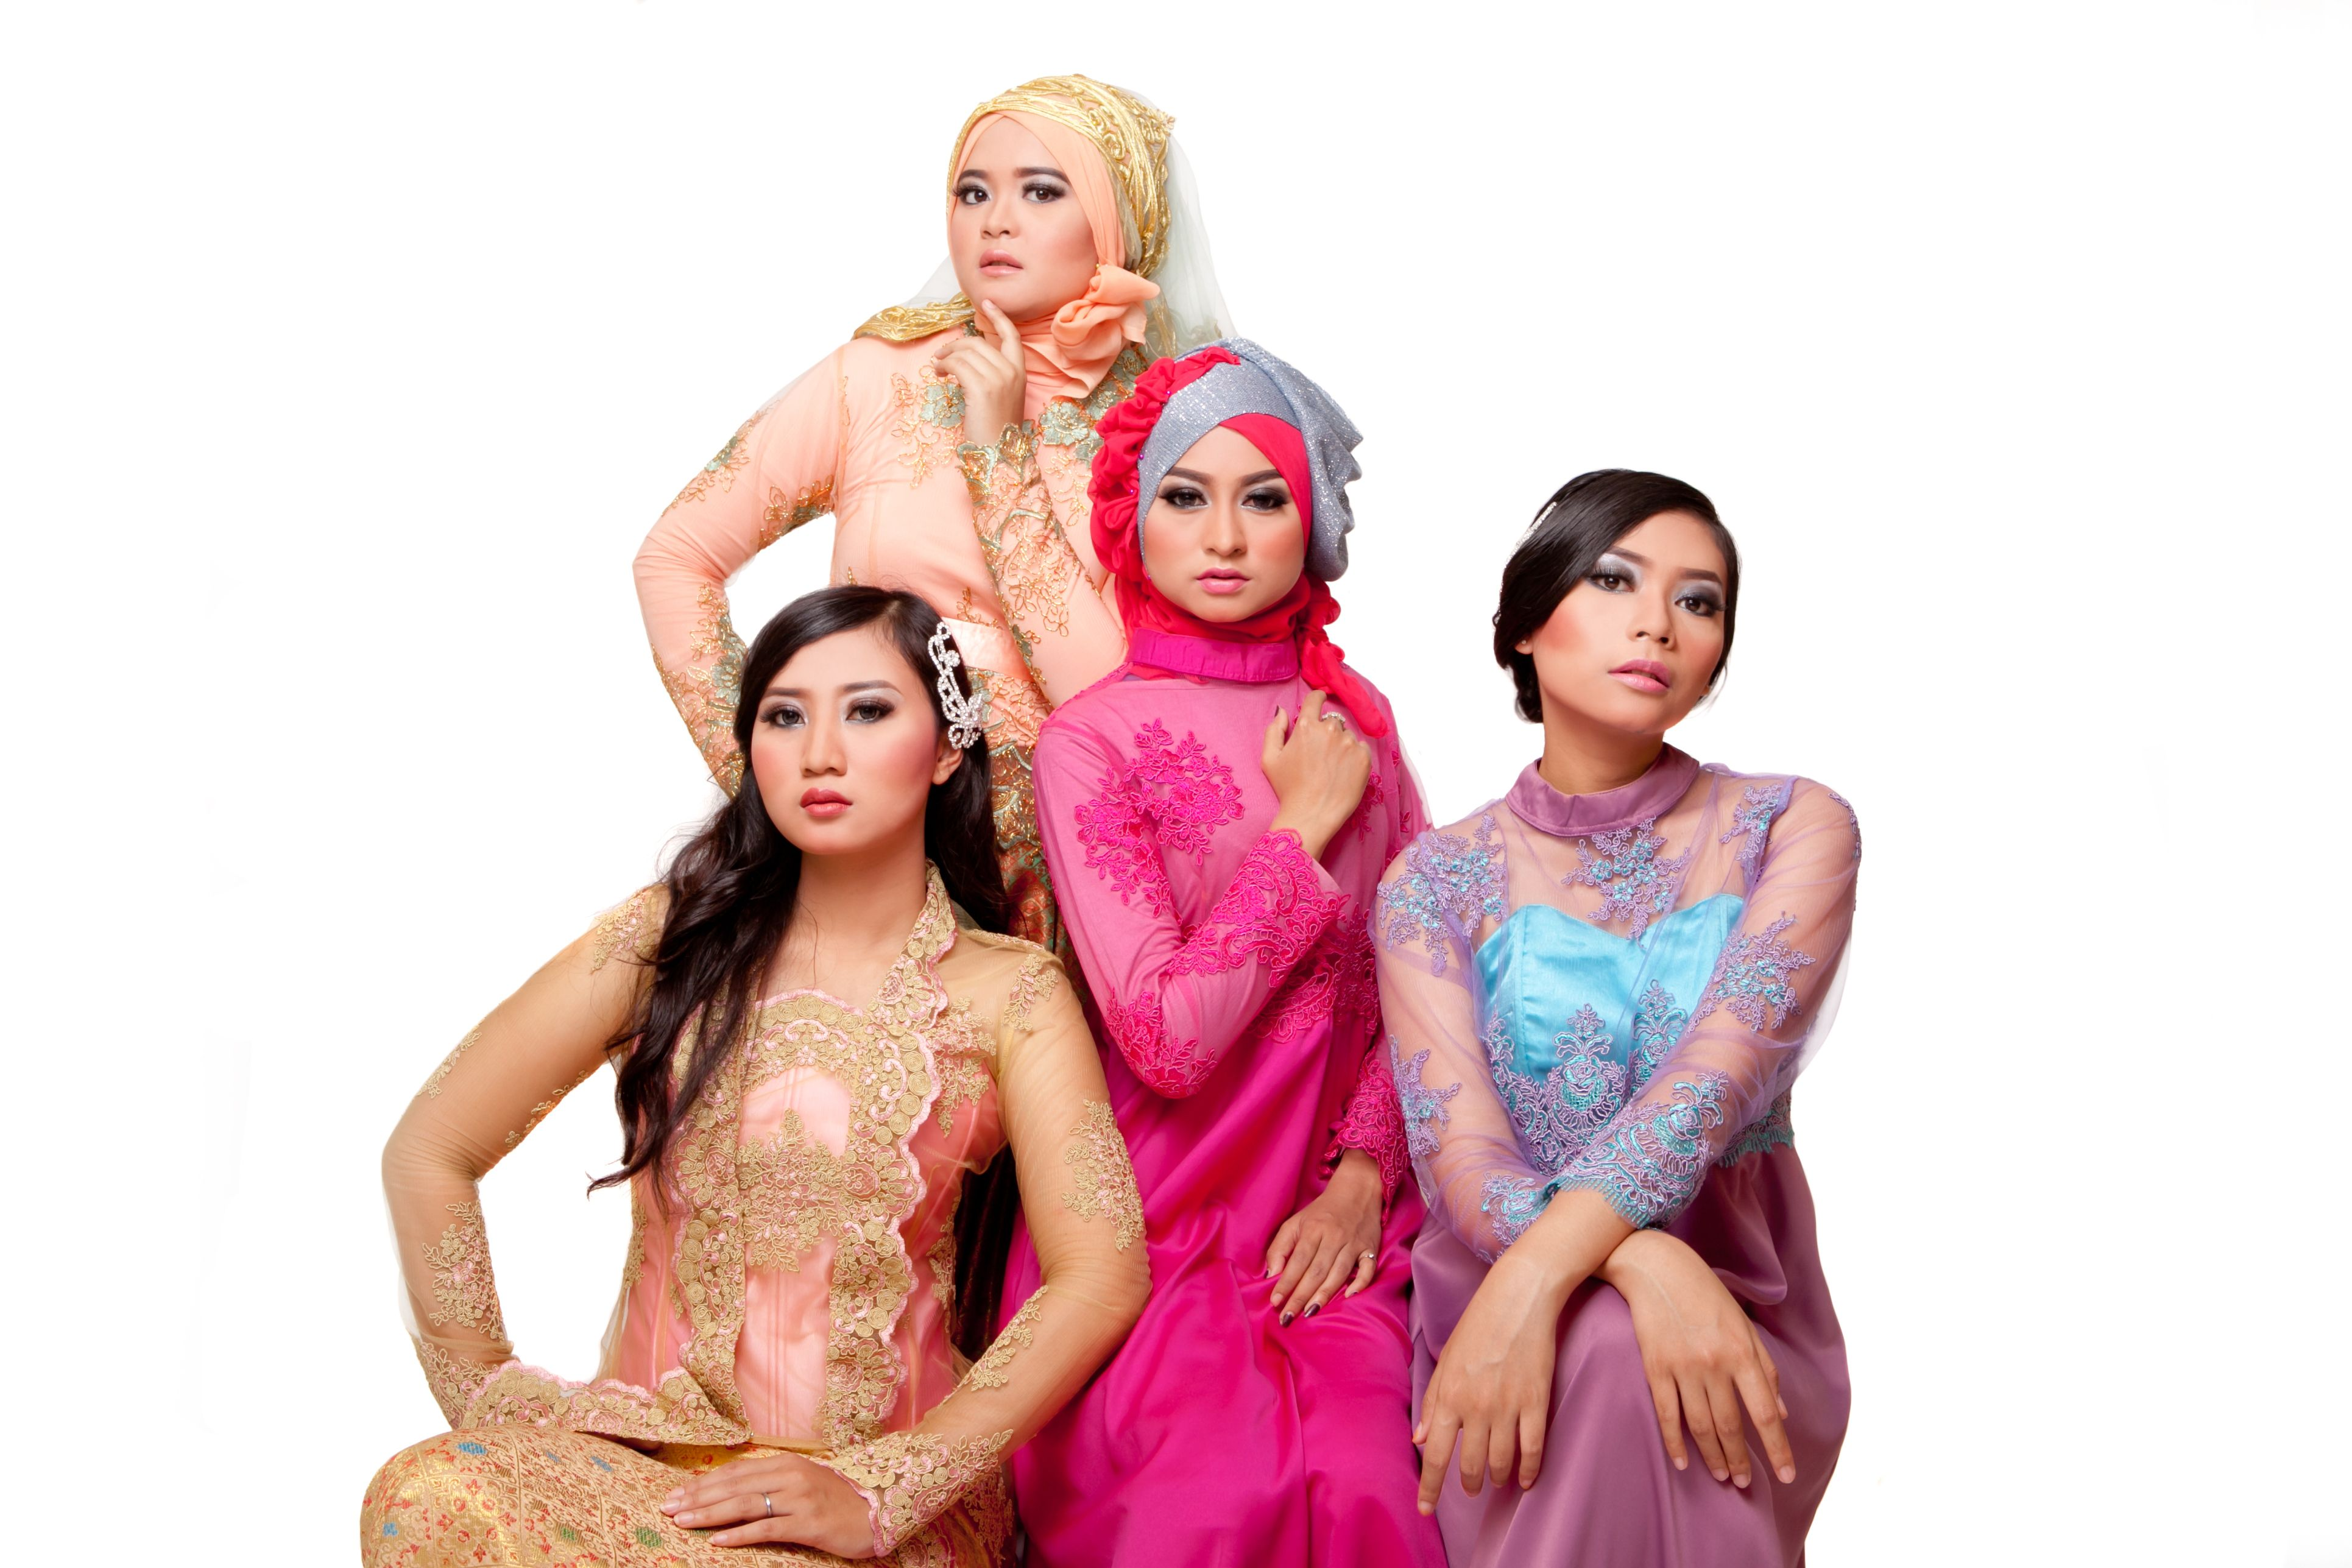 """my models wearing Javanesse traditional gown called """"kebaya"""" thats so awesome i think!! love Indonesia :3"""